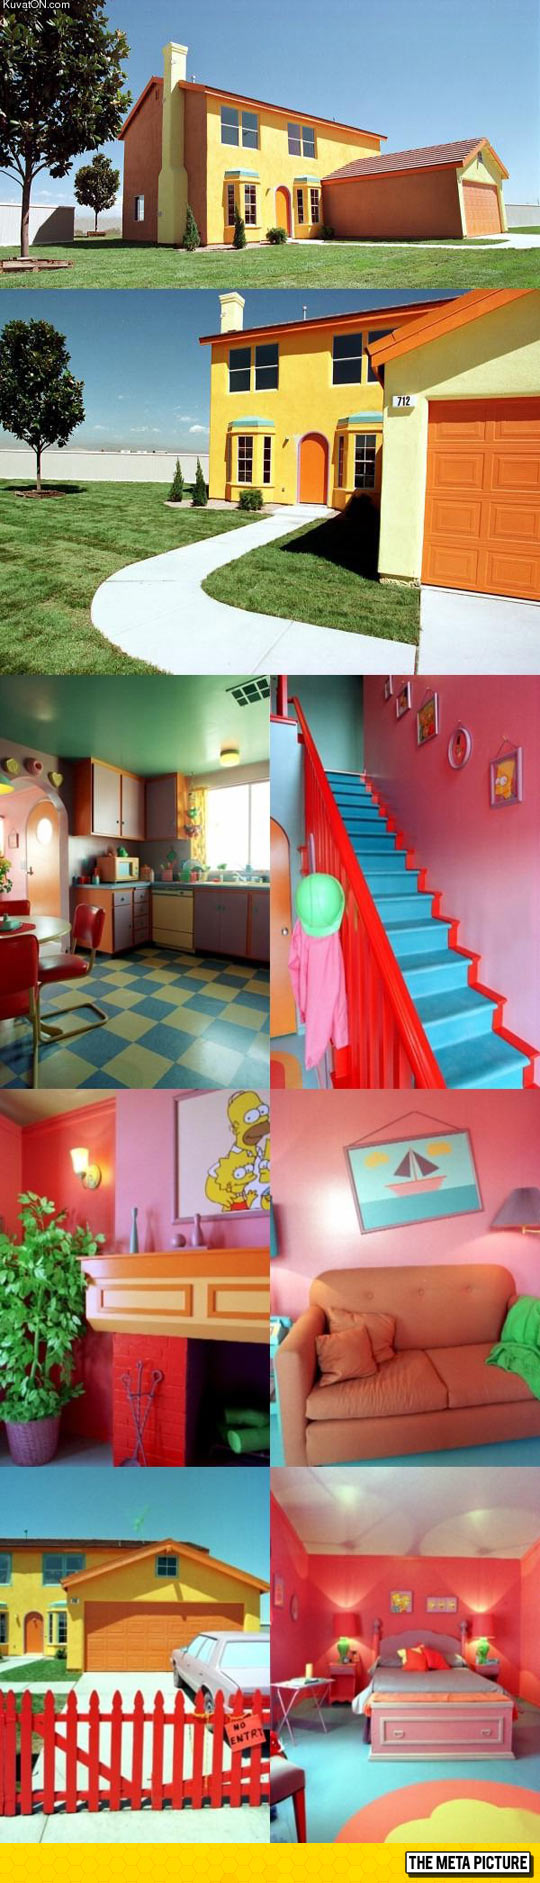 cool-The-Simpsons-house-real-life